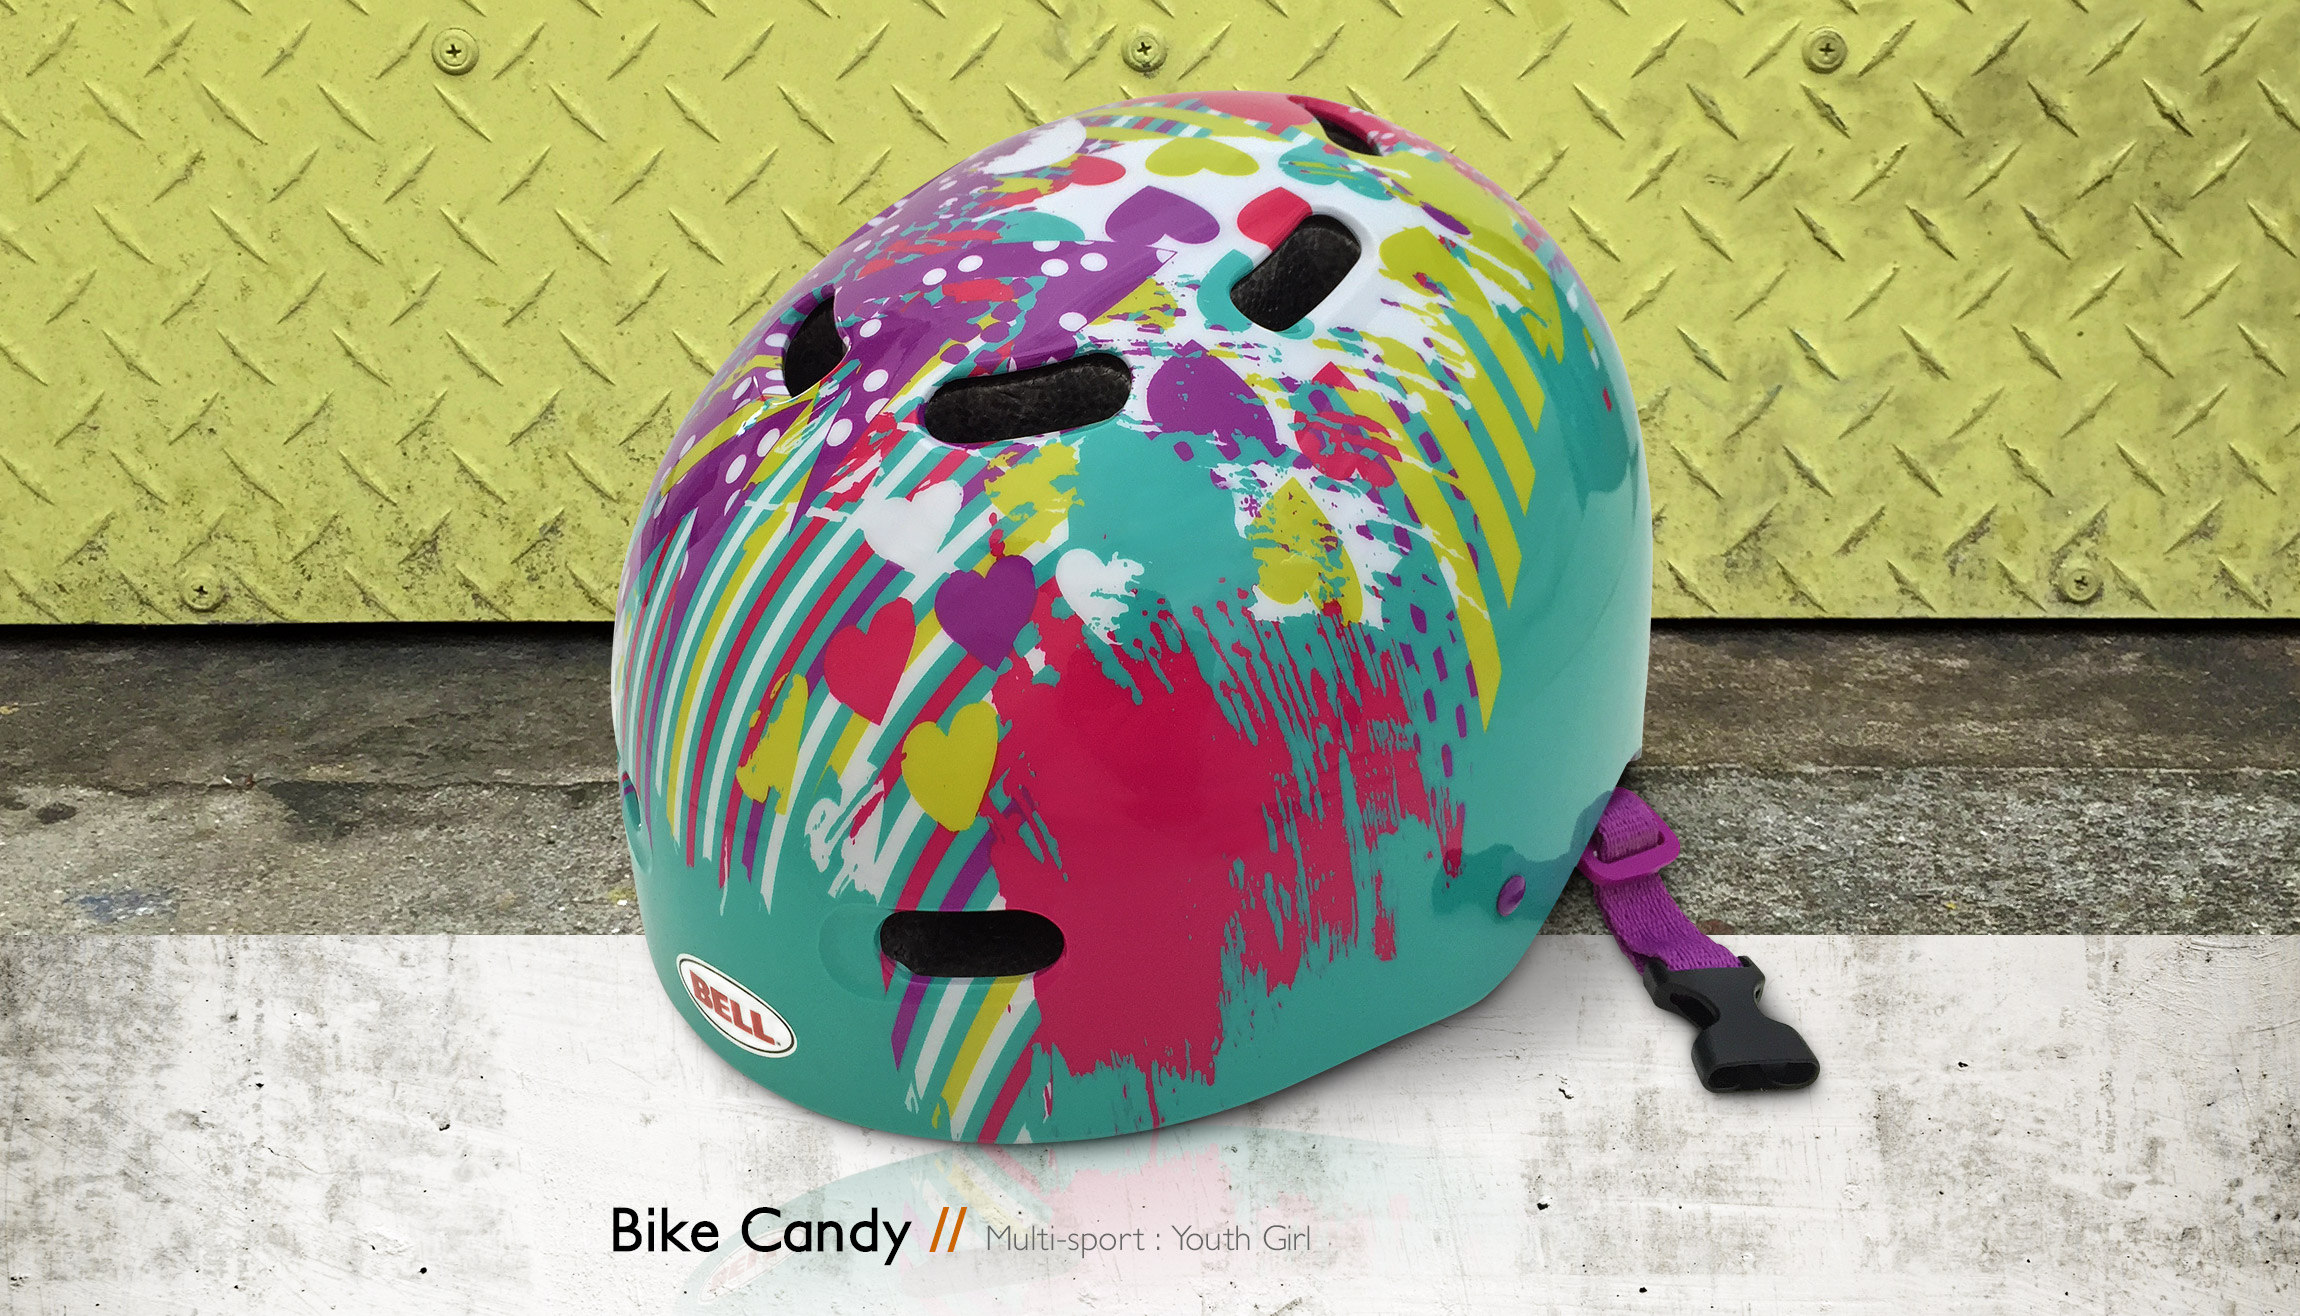 Bell Helmets Bike Candy multi-sport youth girl bike & skate helmet design - Graphic Regime